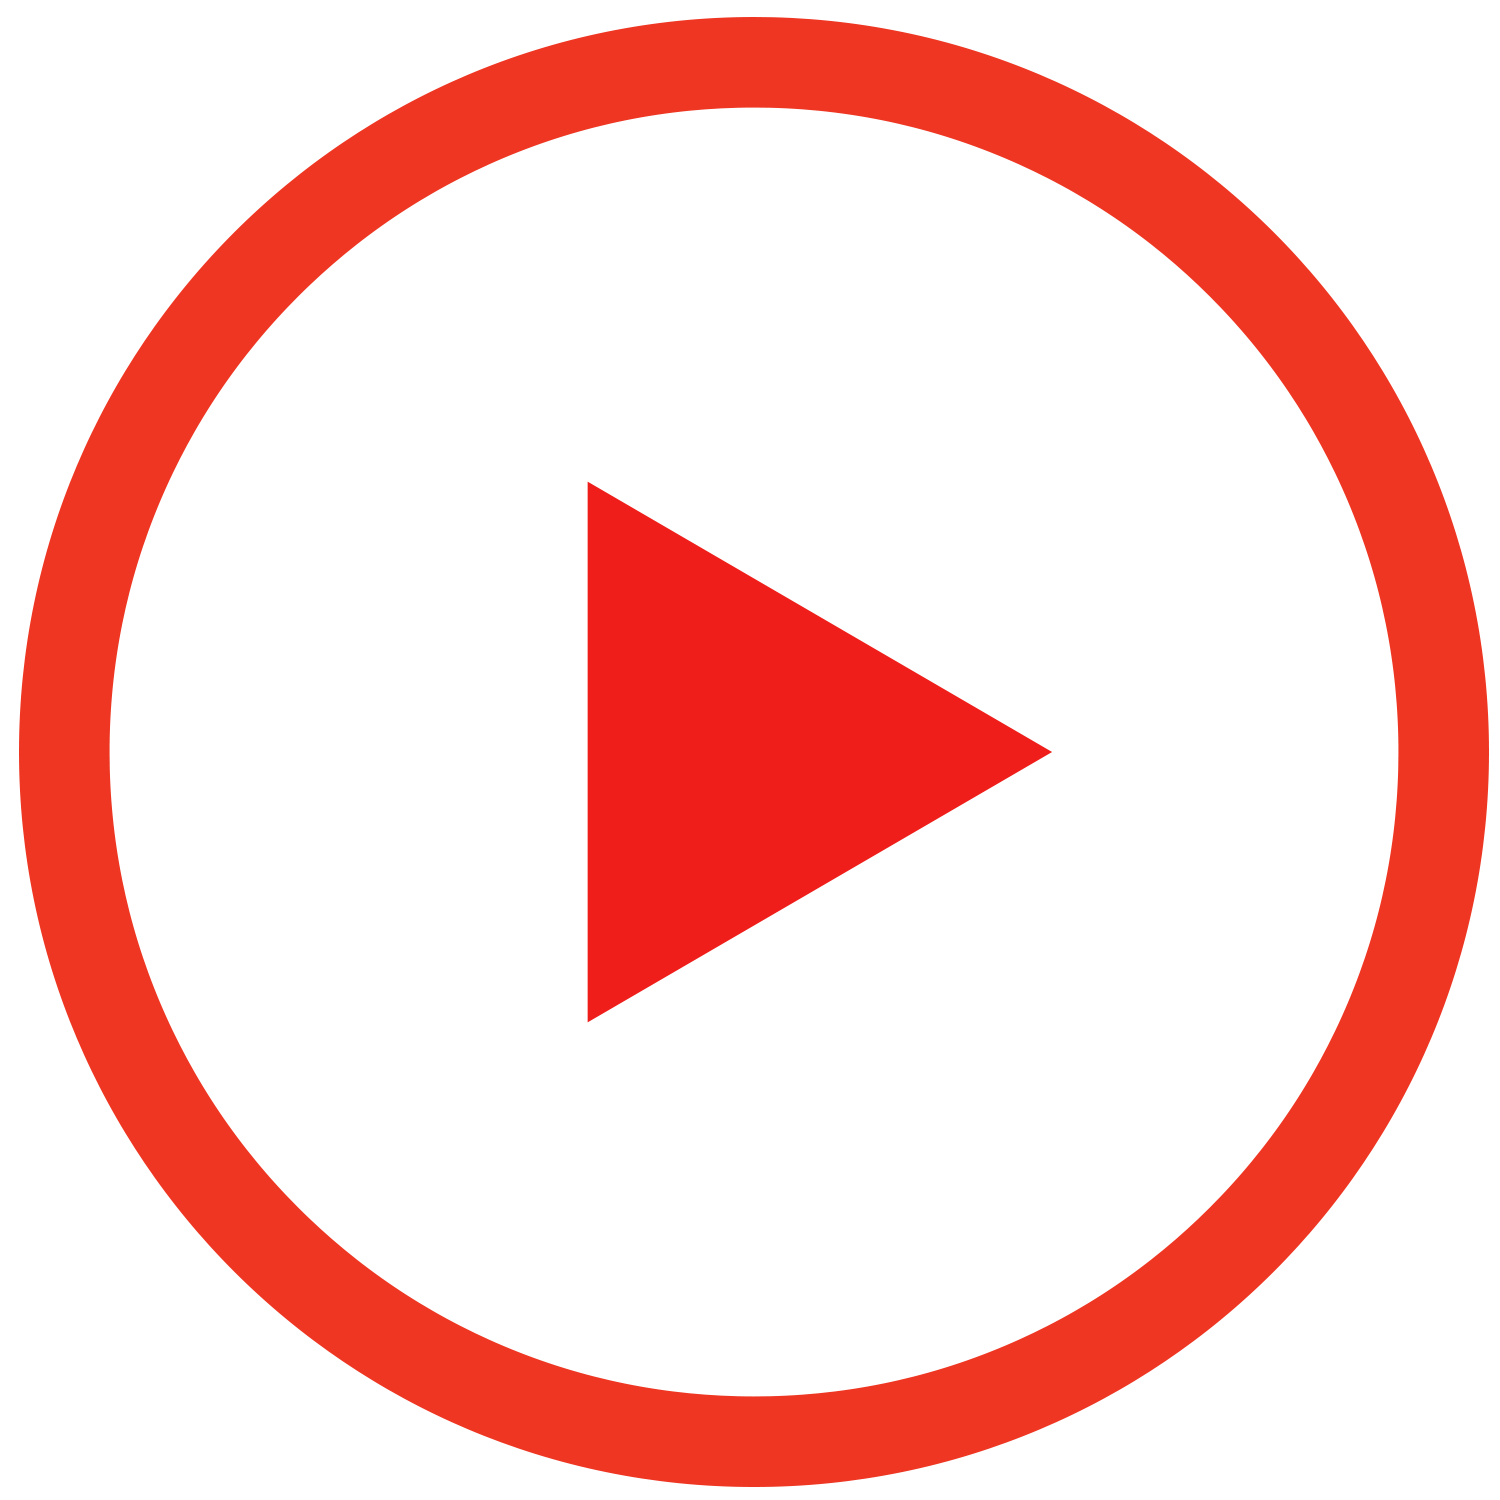 Play Button PNG - 23748